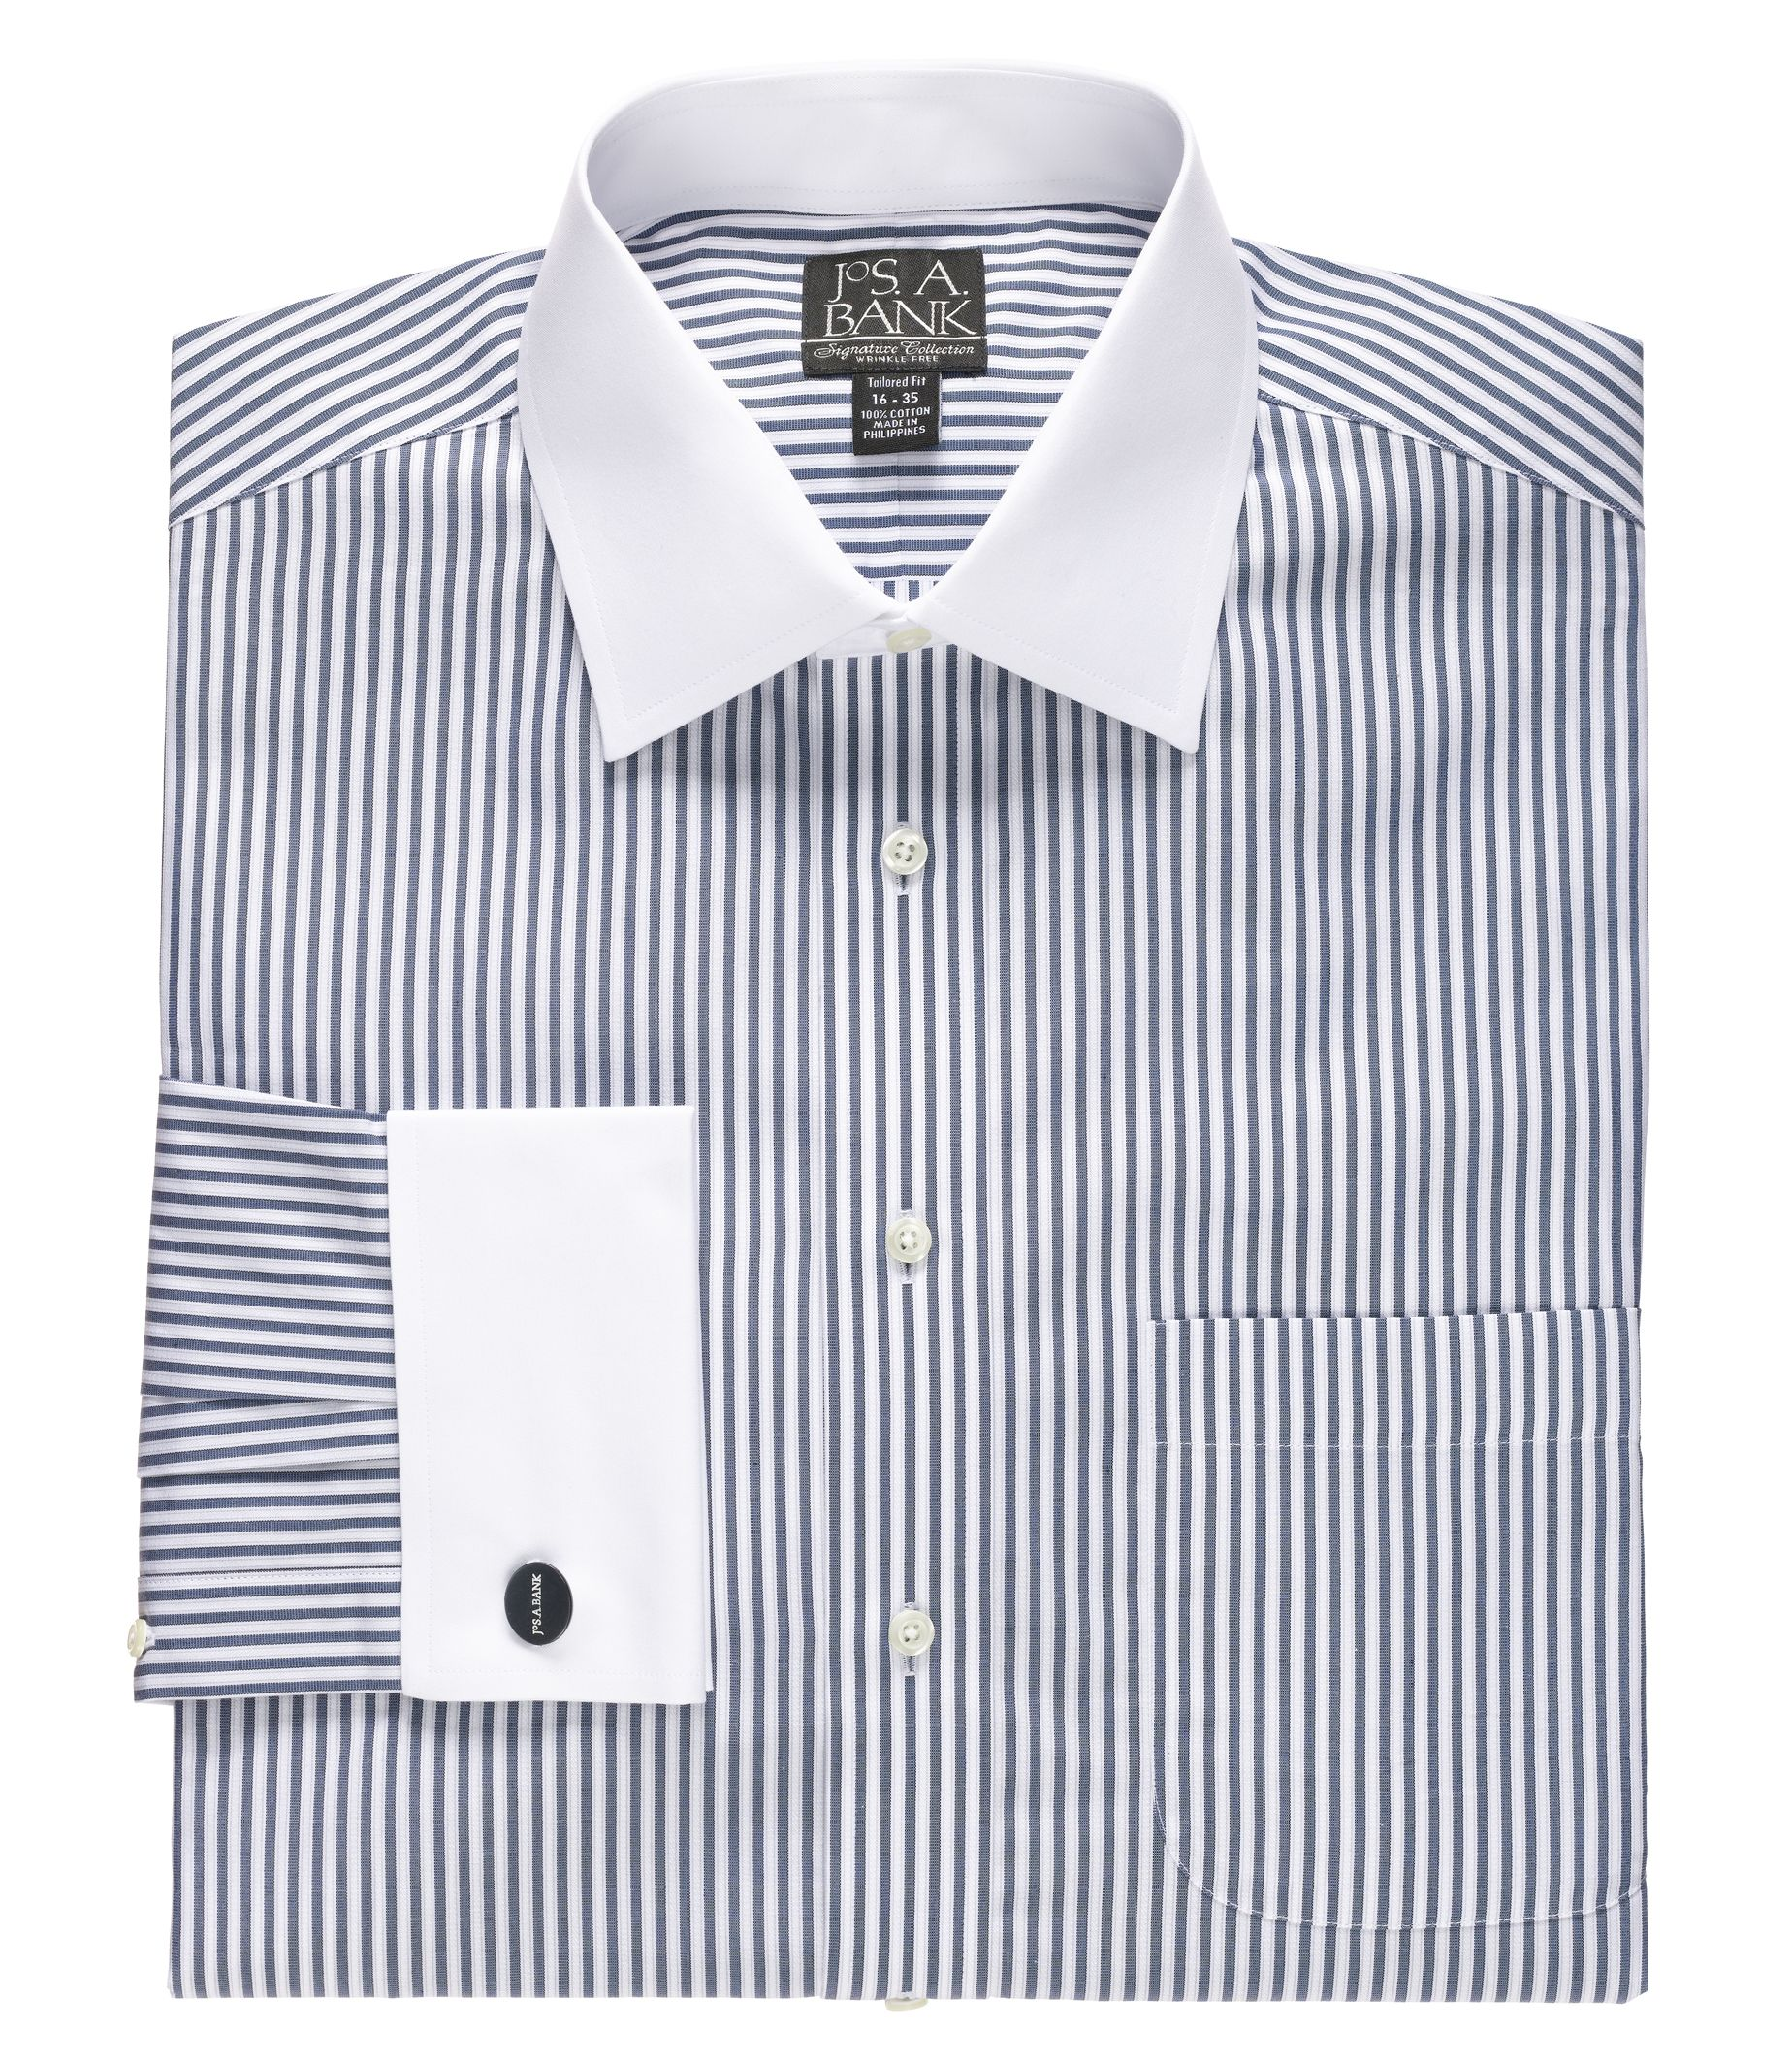 Bold Stripes White Cuff and Collar mens twenties Shirts